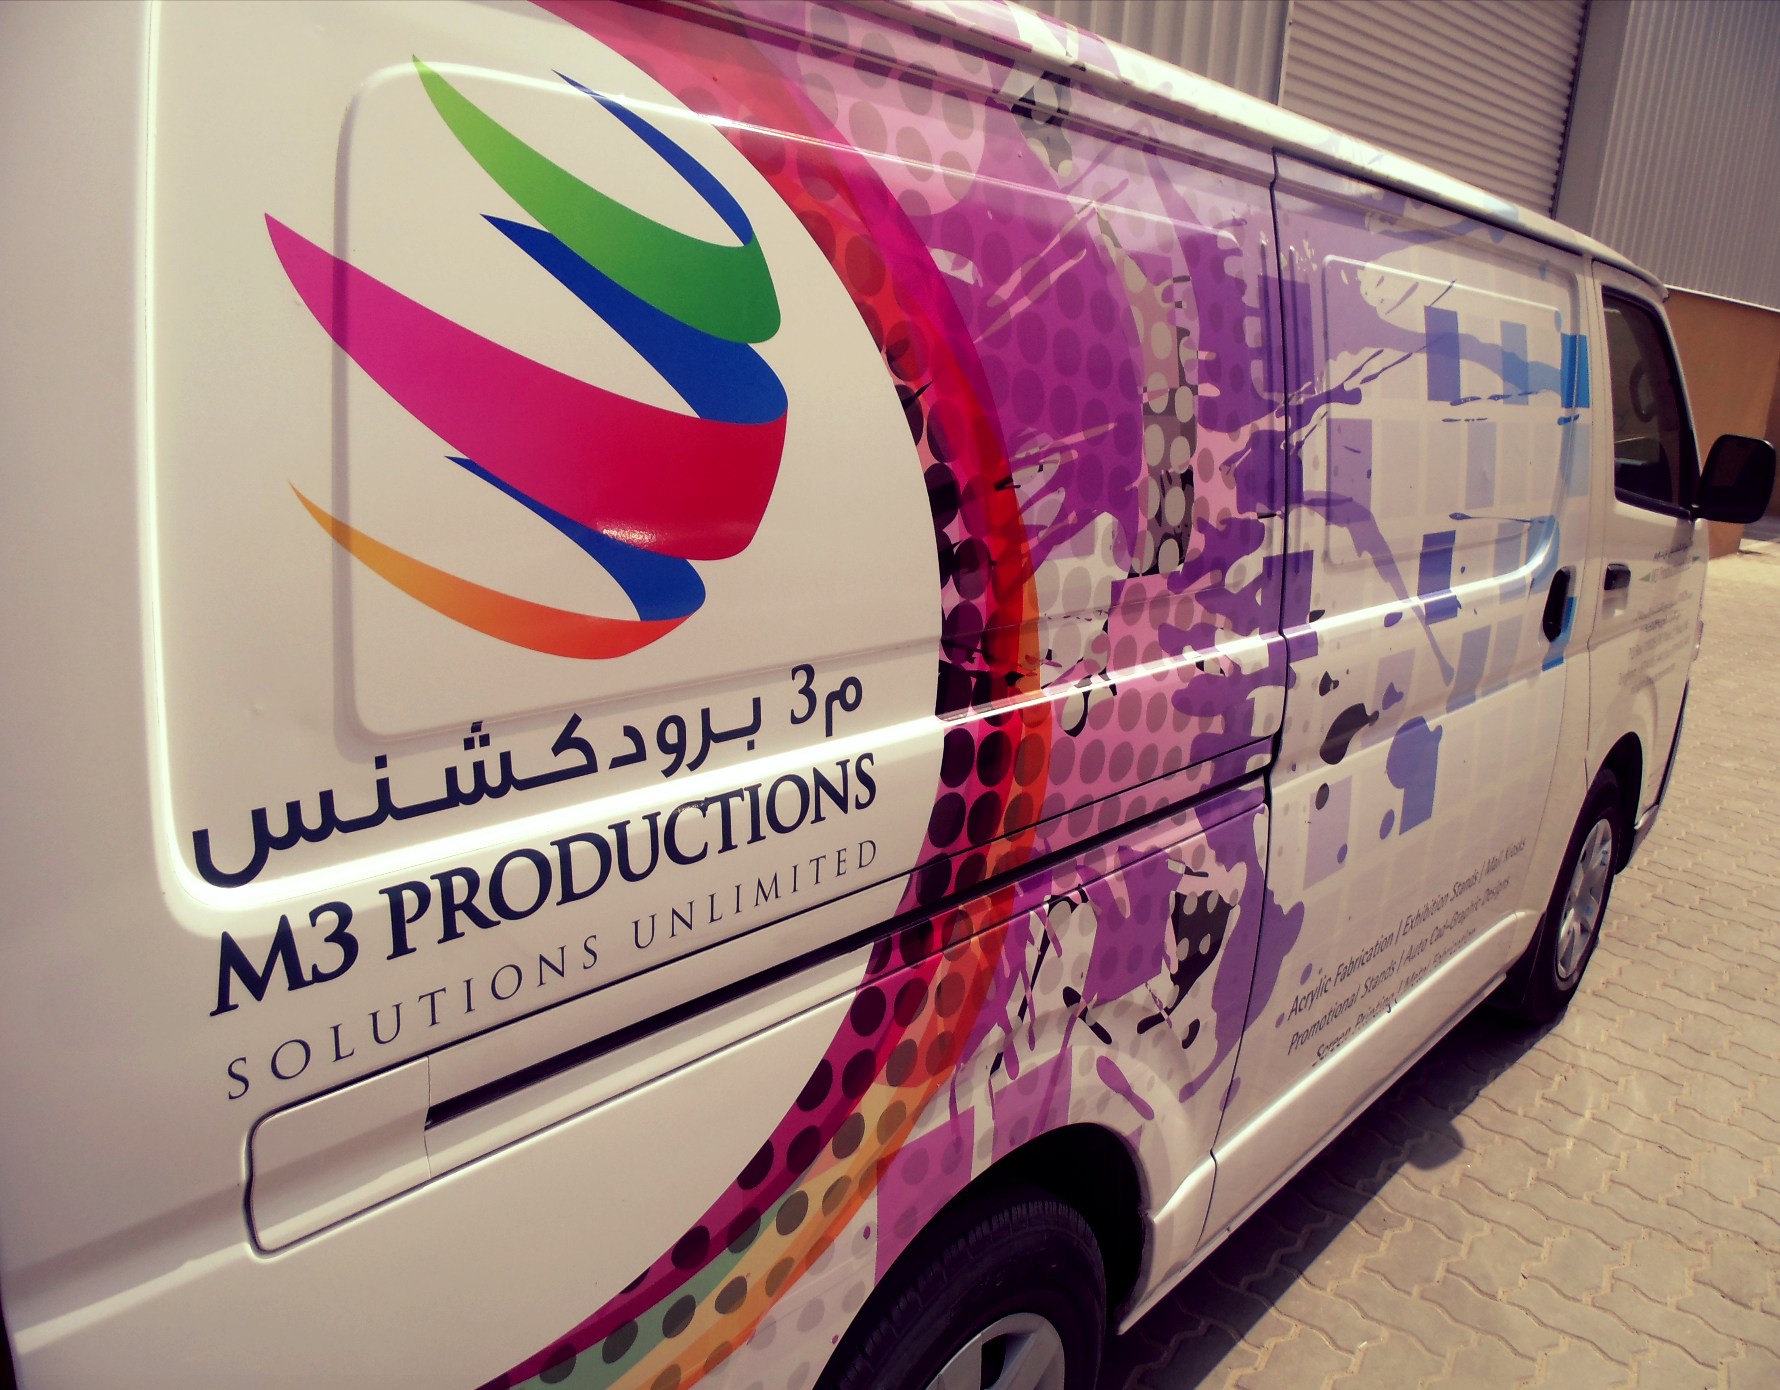 m3 productions van.jpg